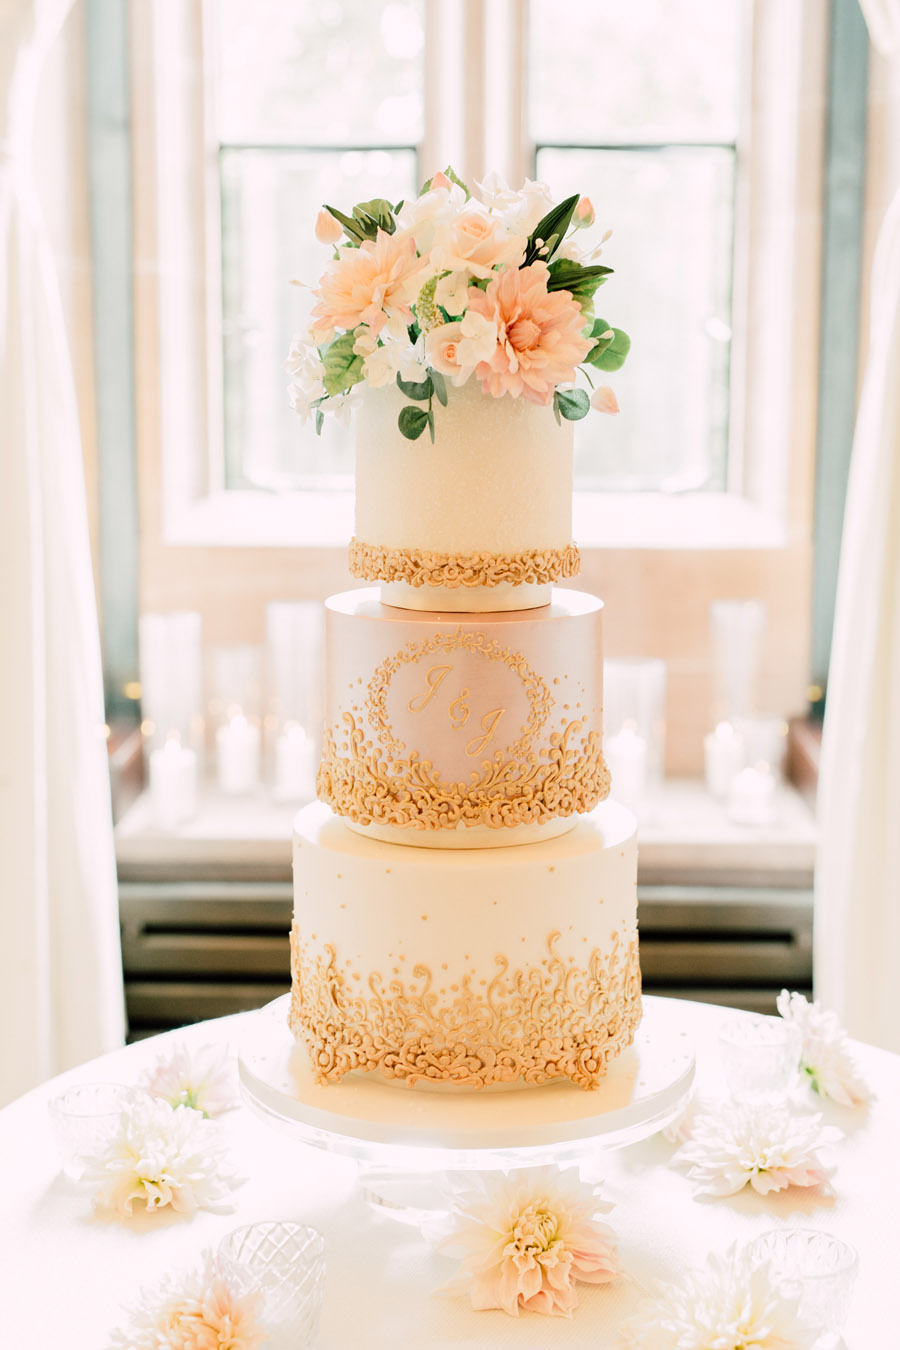 Beautiful wedding cakes by The Frostery - trends and ideas for 2019 (10)